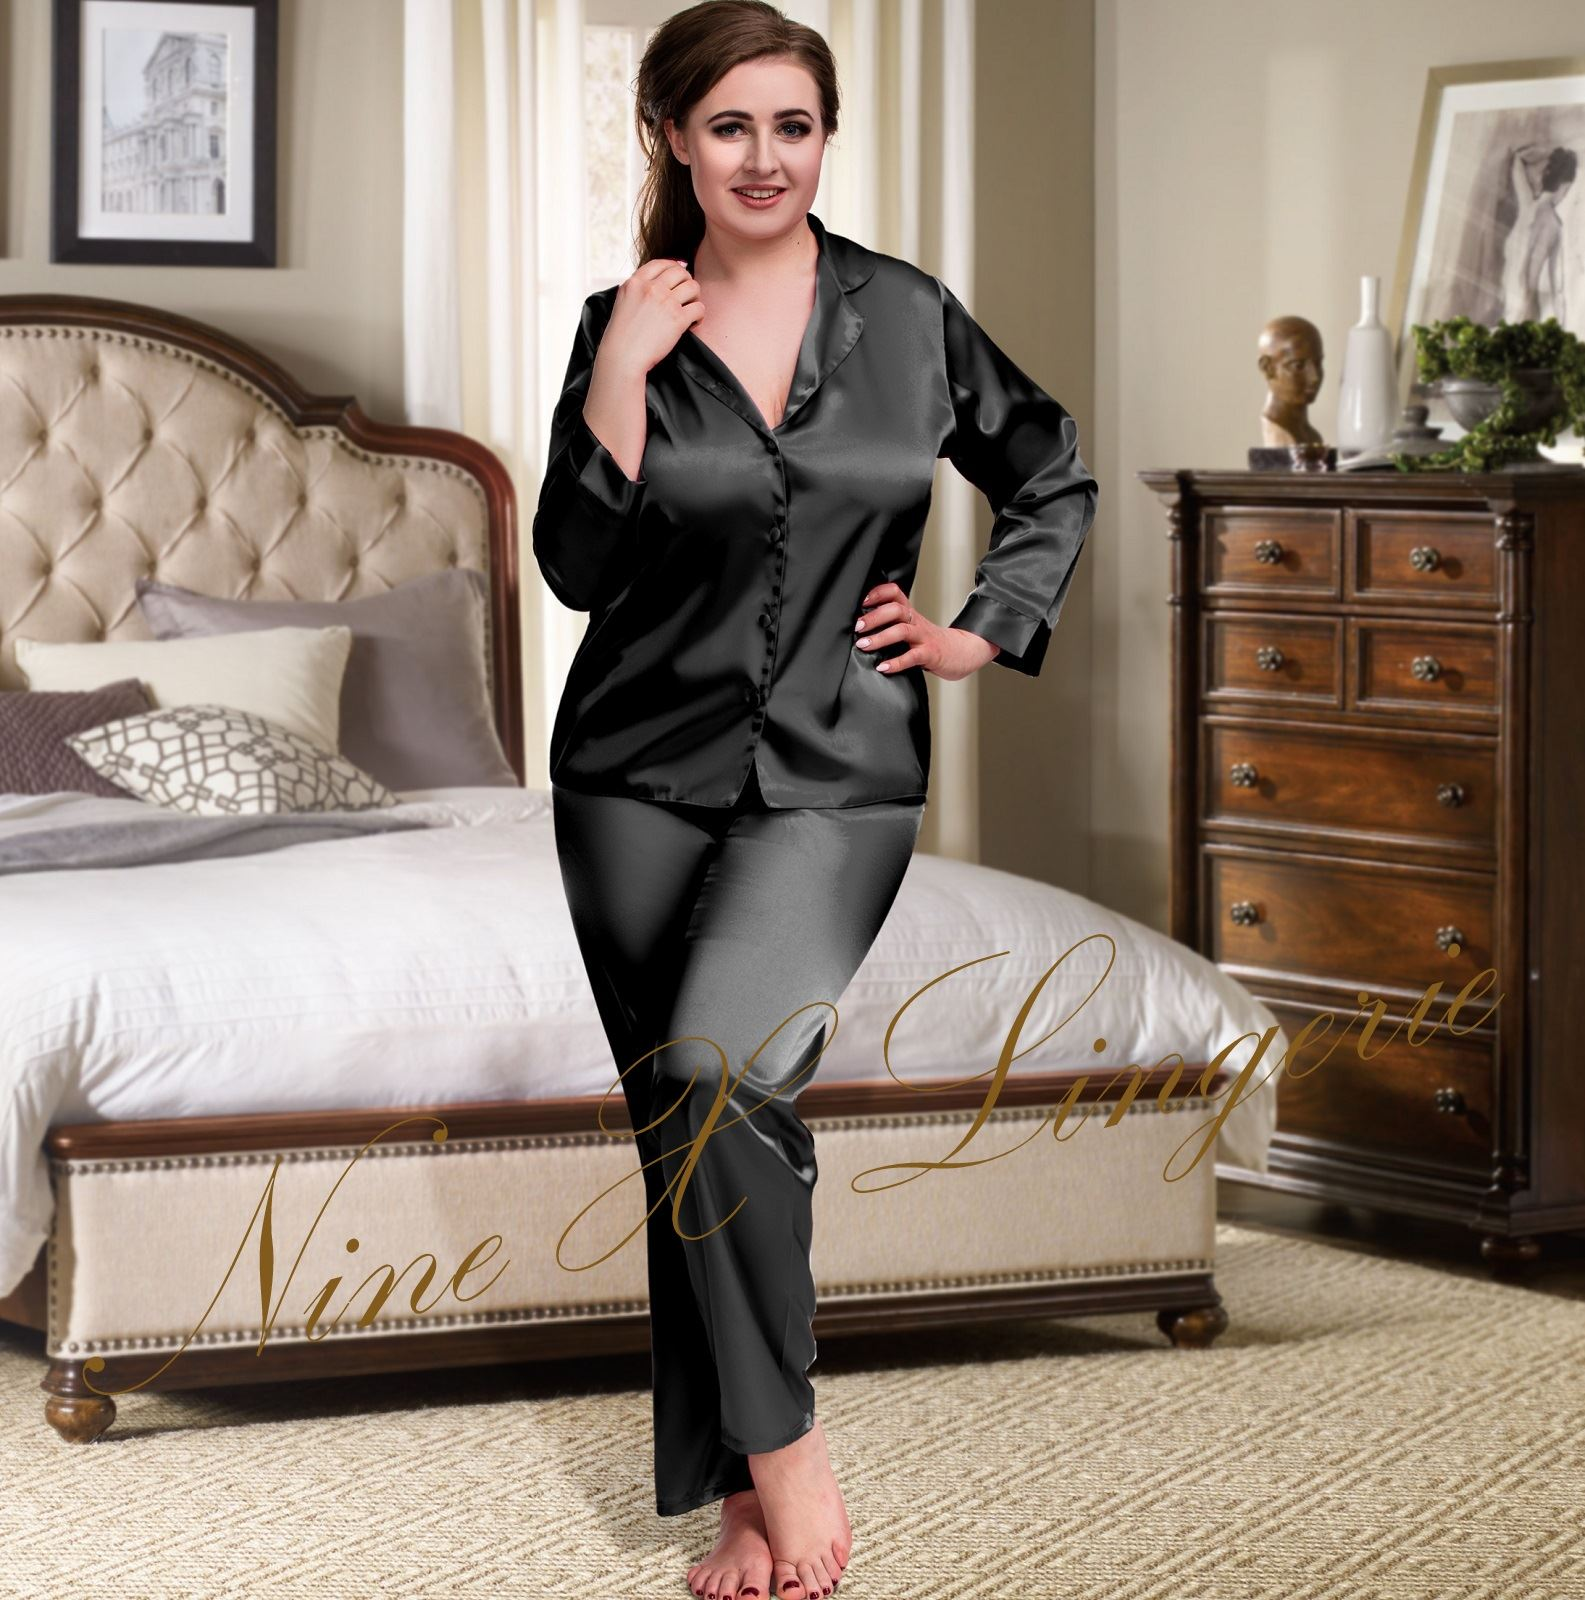 Nine X NEW Ivory Plus Size Lingerie S-6XL Satin Pyjamas Nightwear Silk PJ S 8c3aac8ba